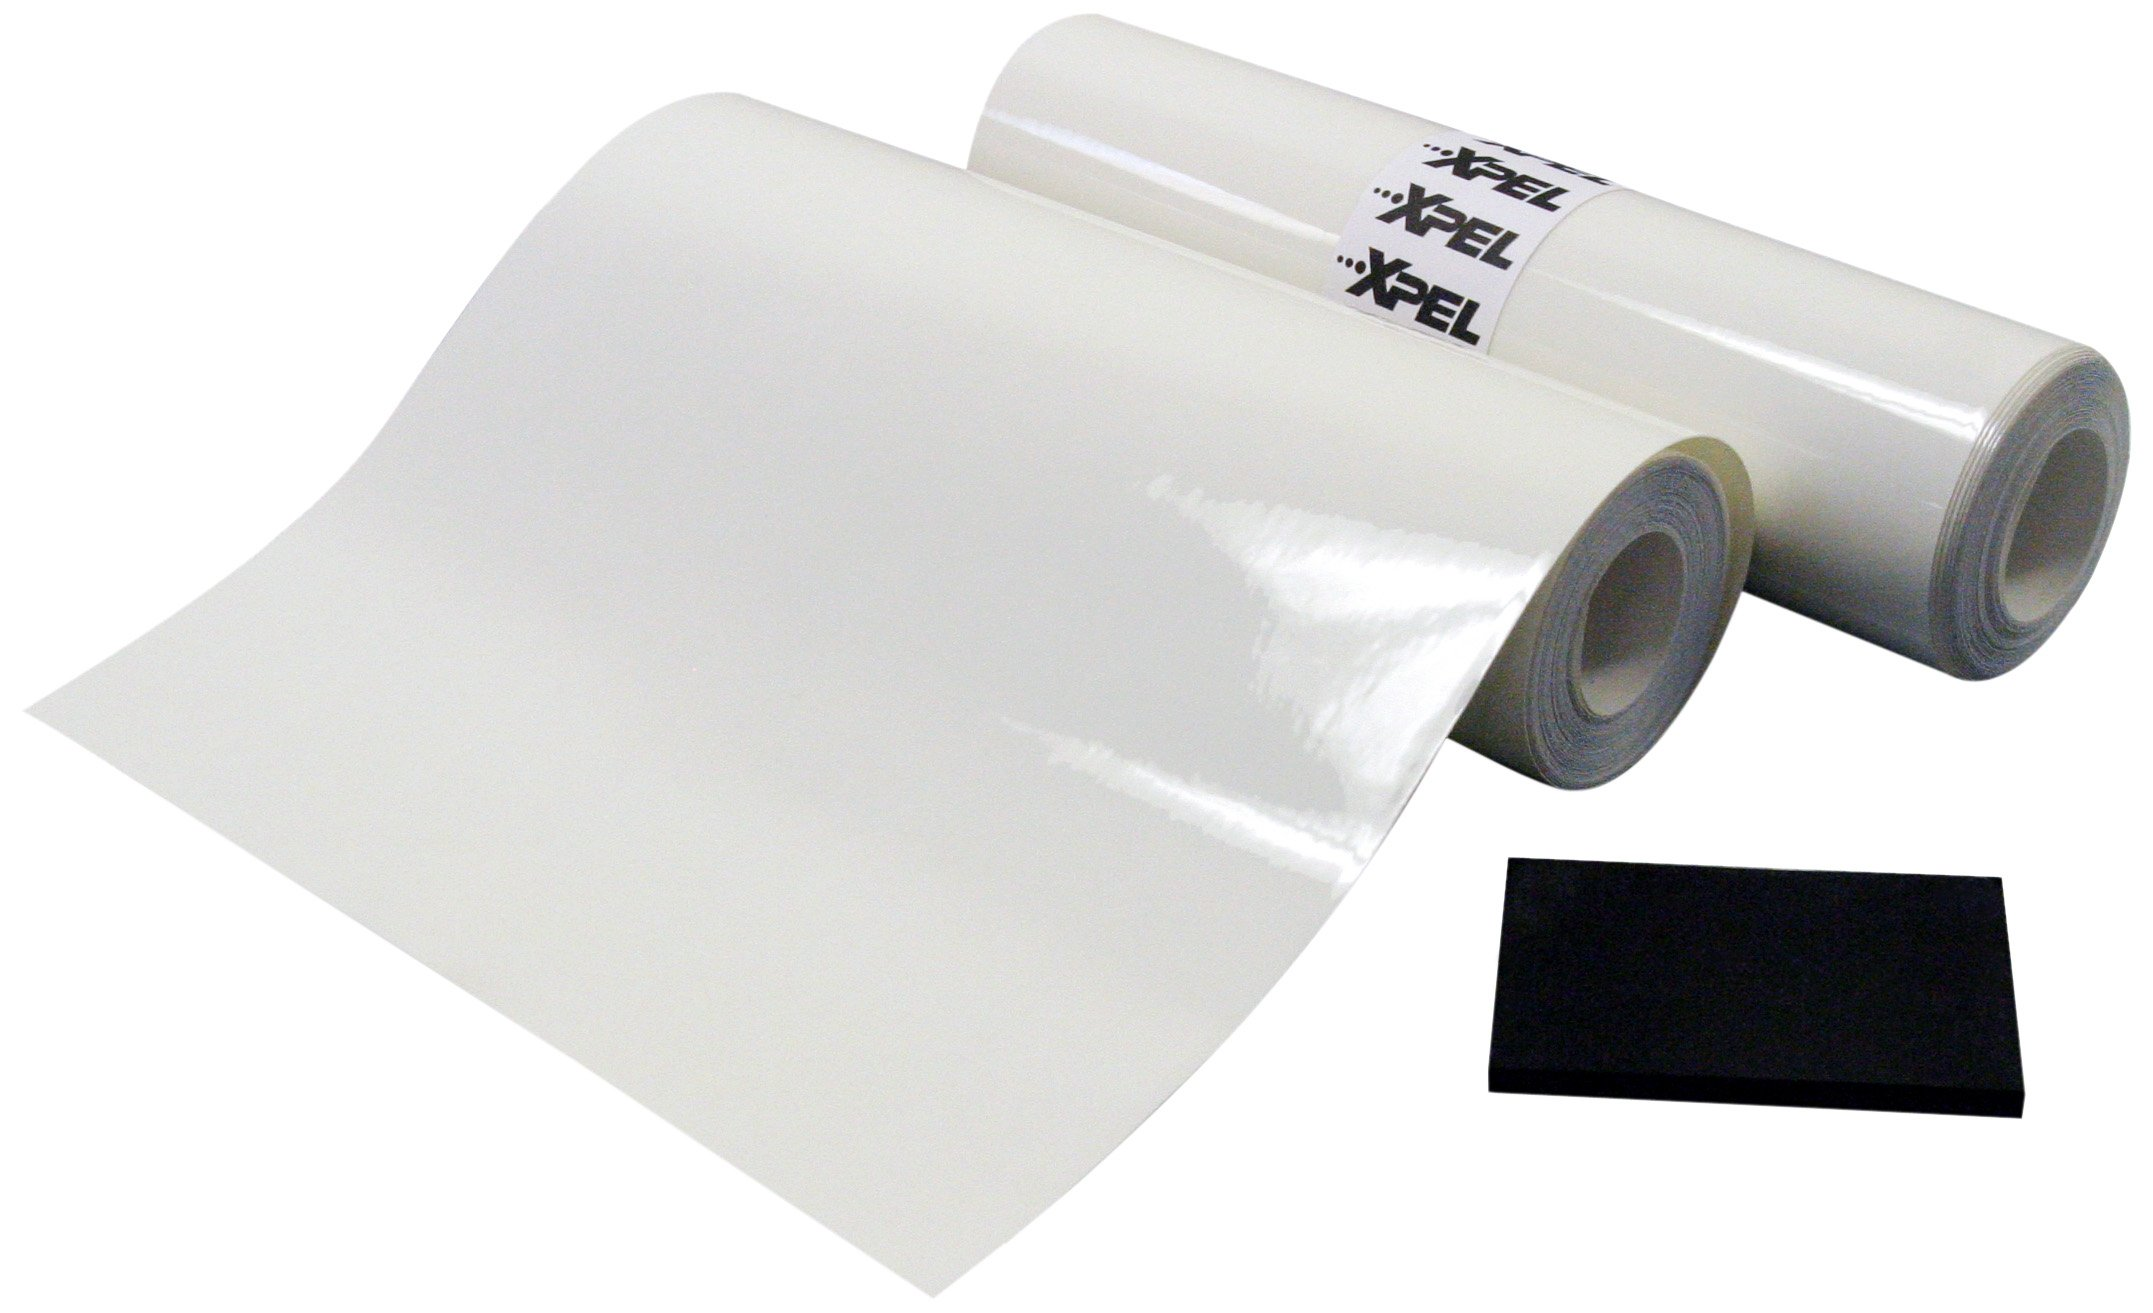 XPEL Clear Universal Rocker Panel Guard ( 9'' x 30') Paint Protection Film Kit